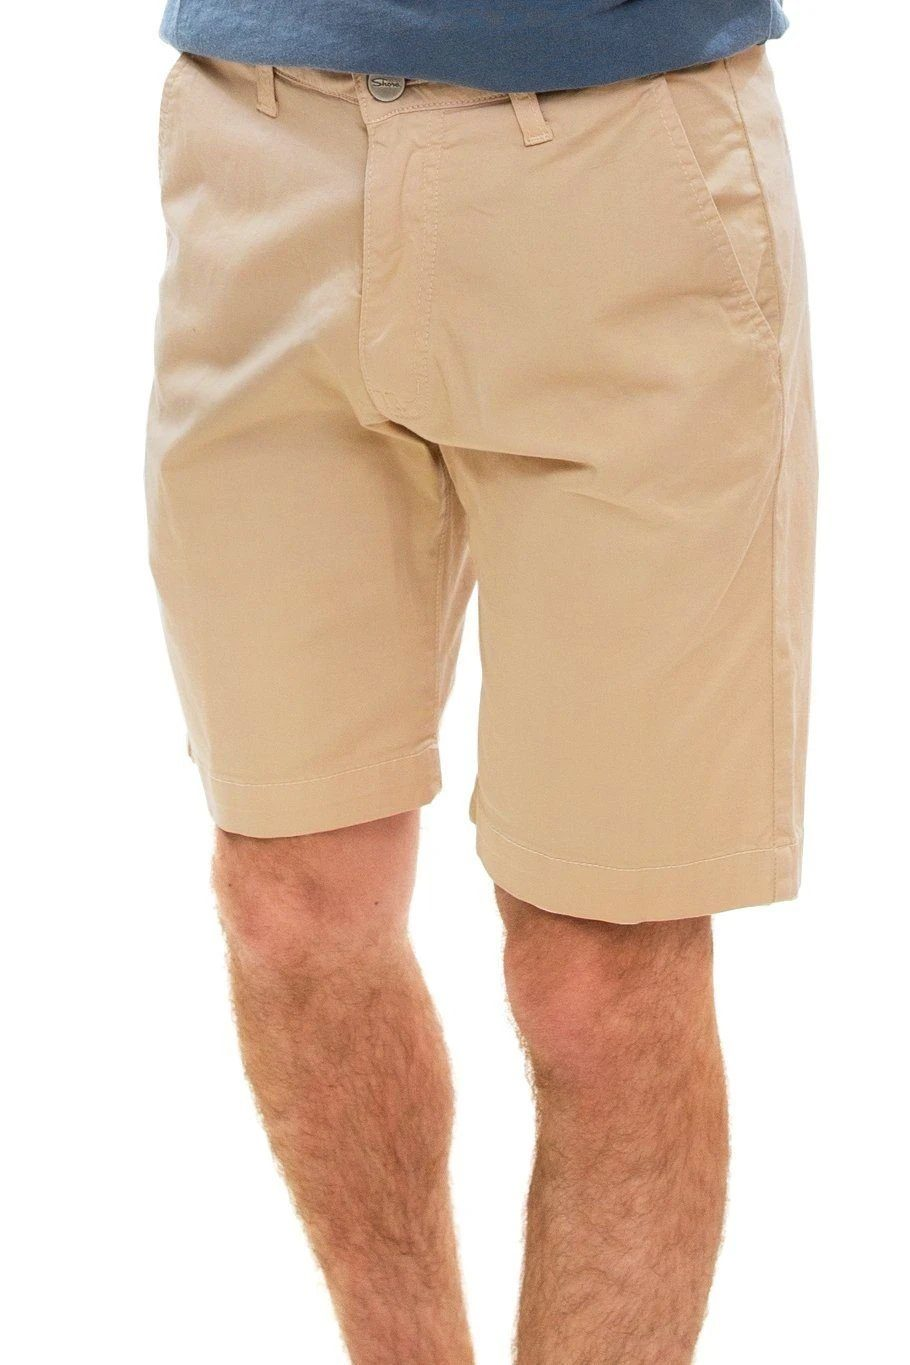 "Liam 9"" Flat Front Short - Safari - Shore"